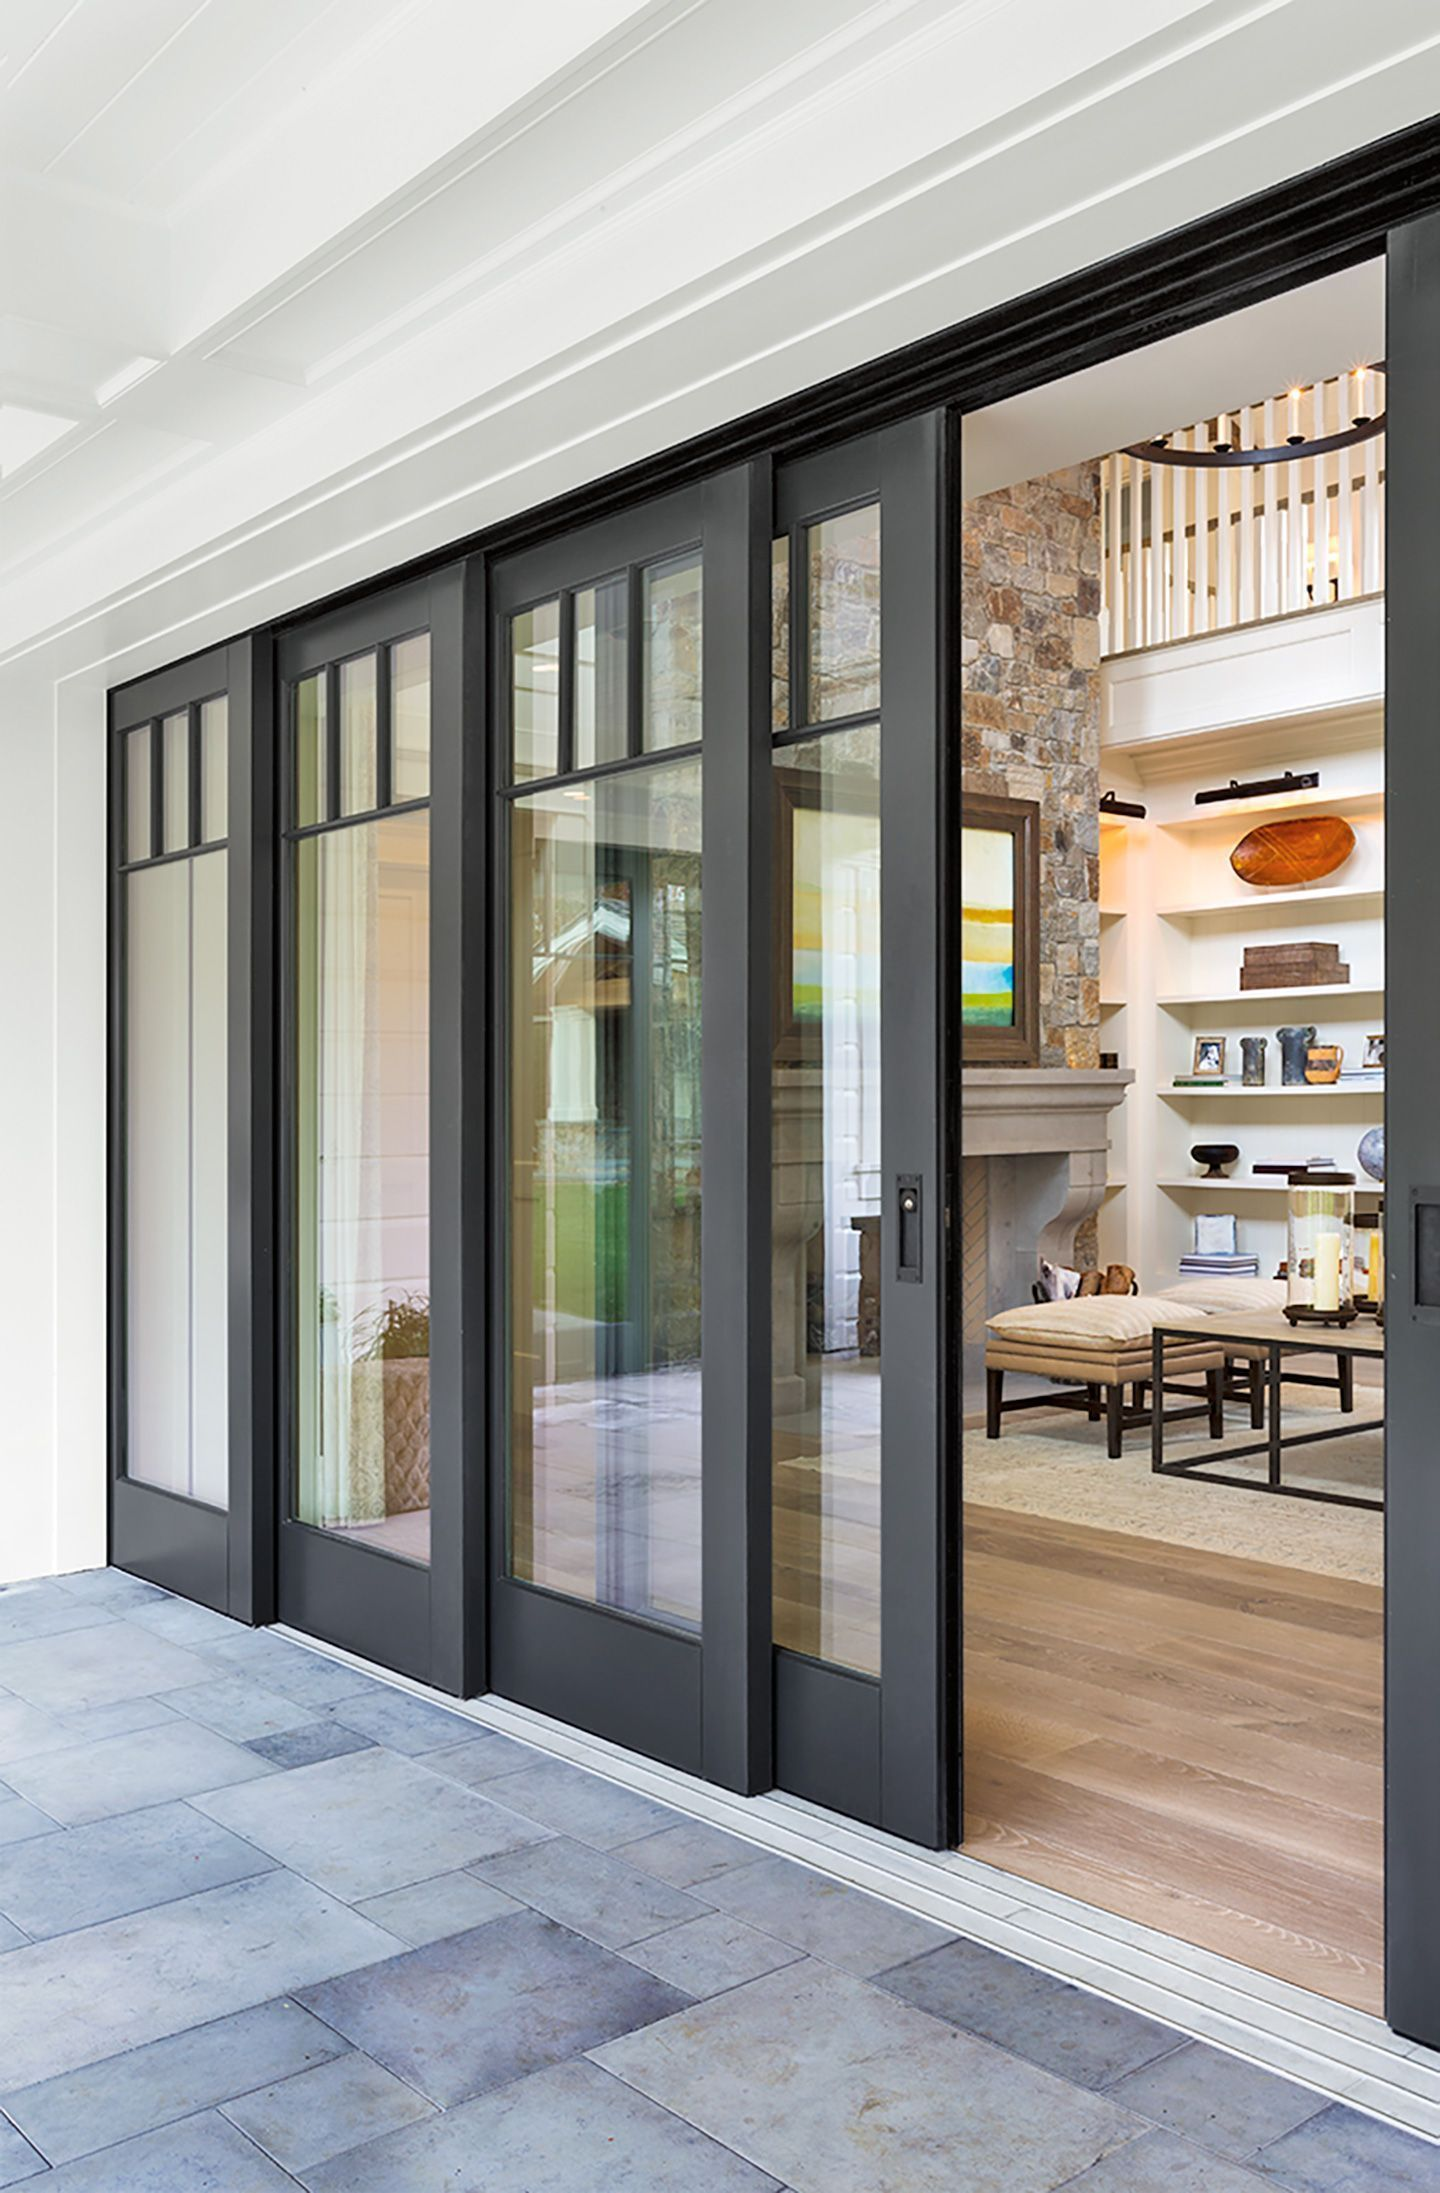 Beautiful Sliding Doors Exterior 9 In 2020 French Doors Exterior Sliding Doors Exterior French Doors Patio